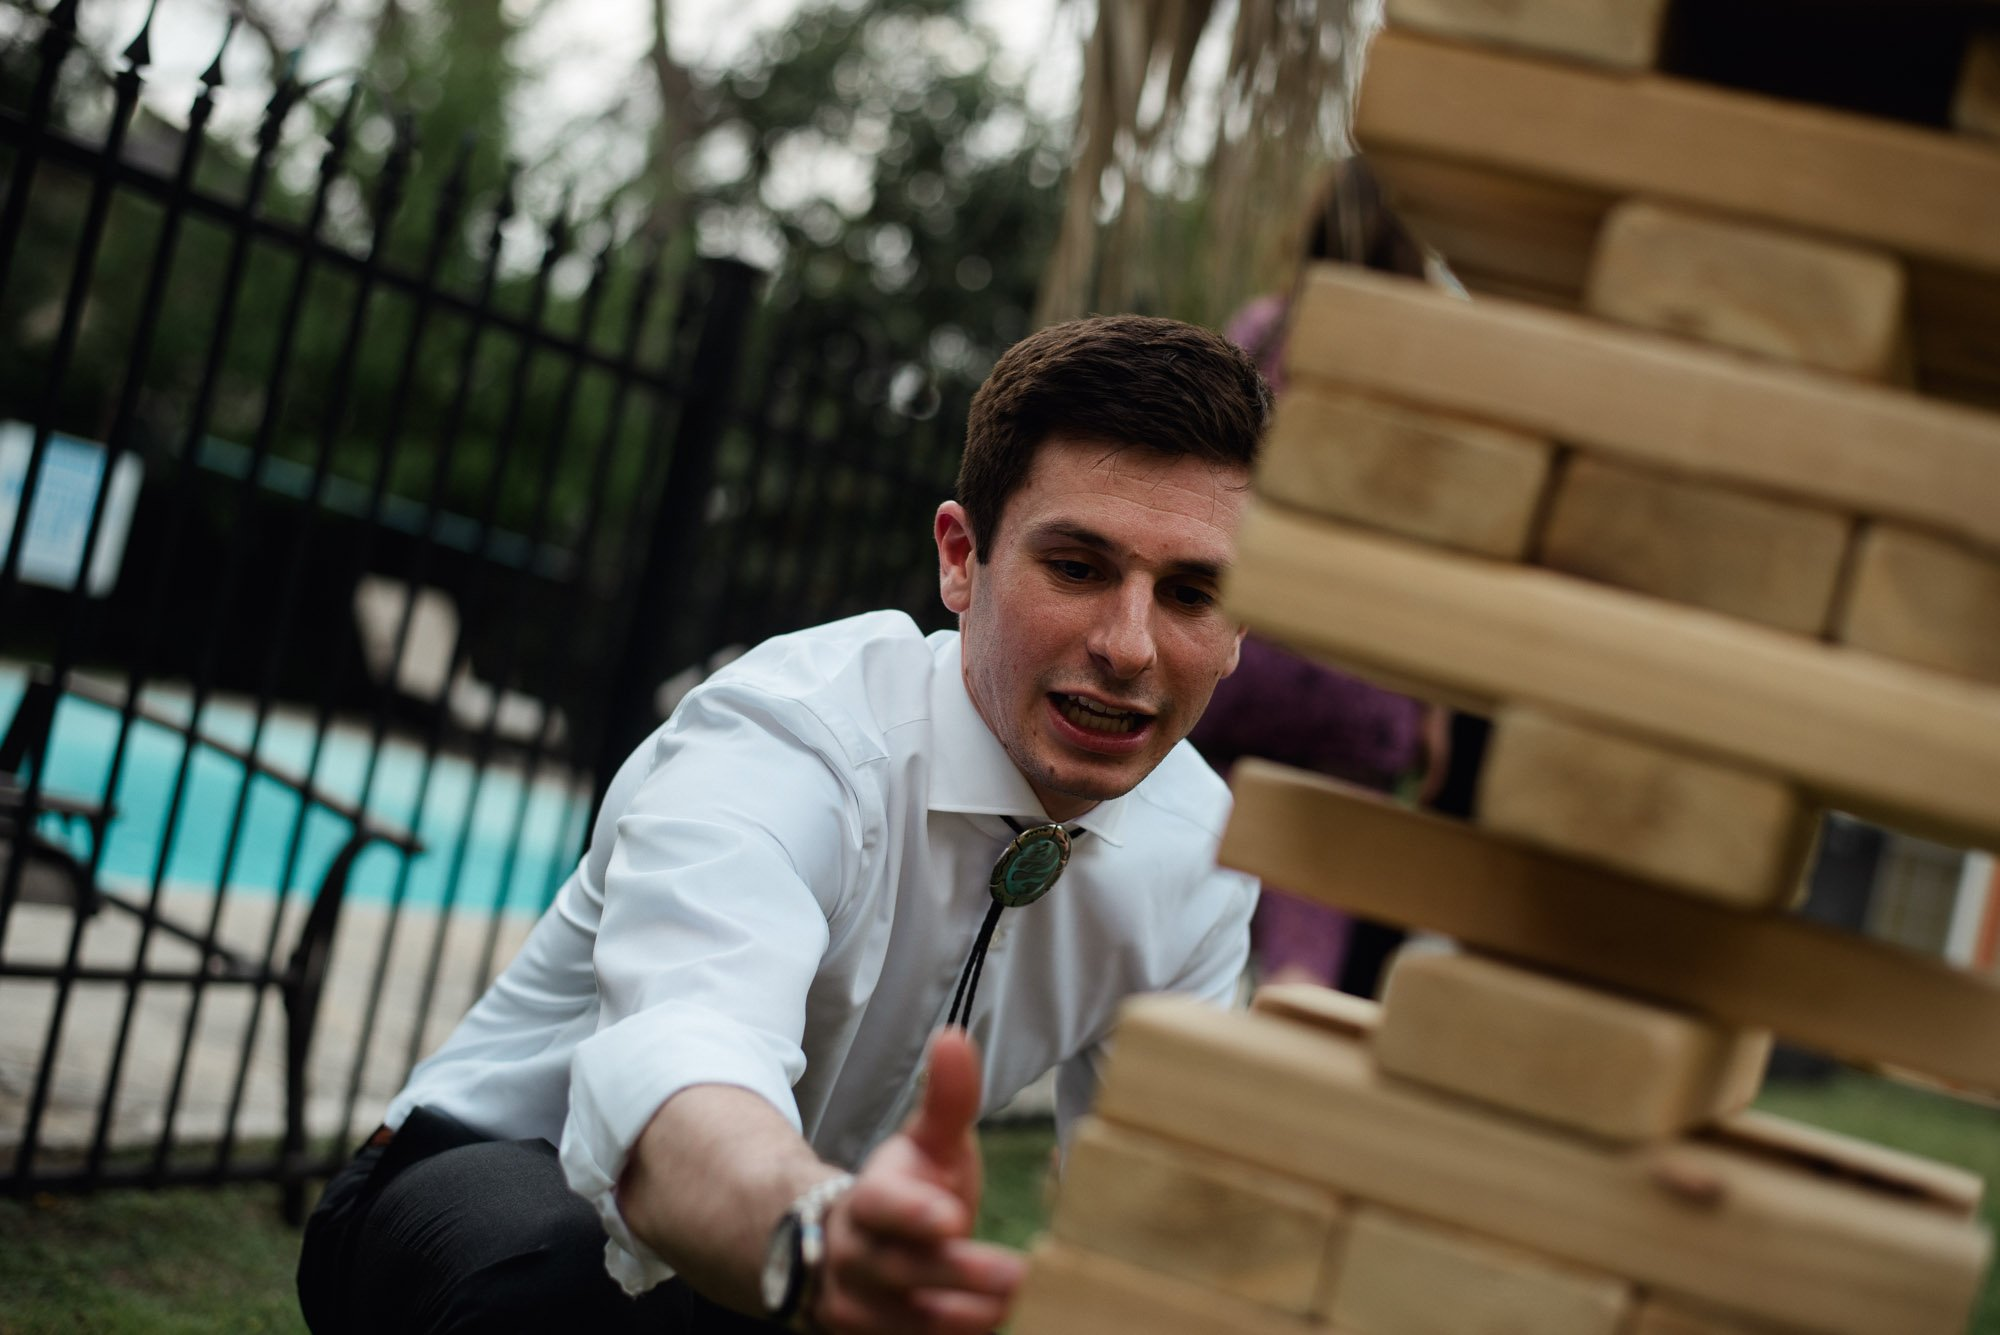 san antonio wedding photographer, backyard games at a san antonio wedding, giant jenga at a wedding in san antonio